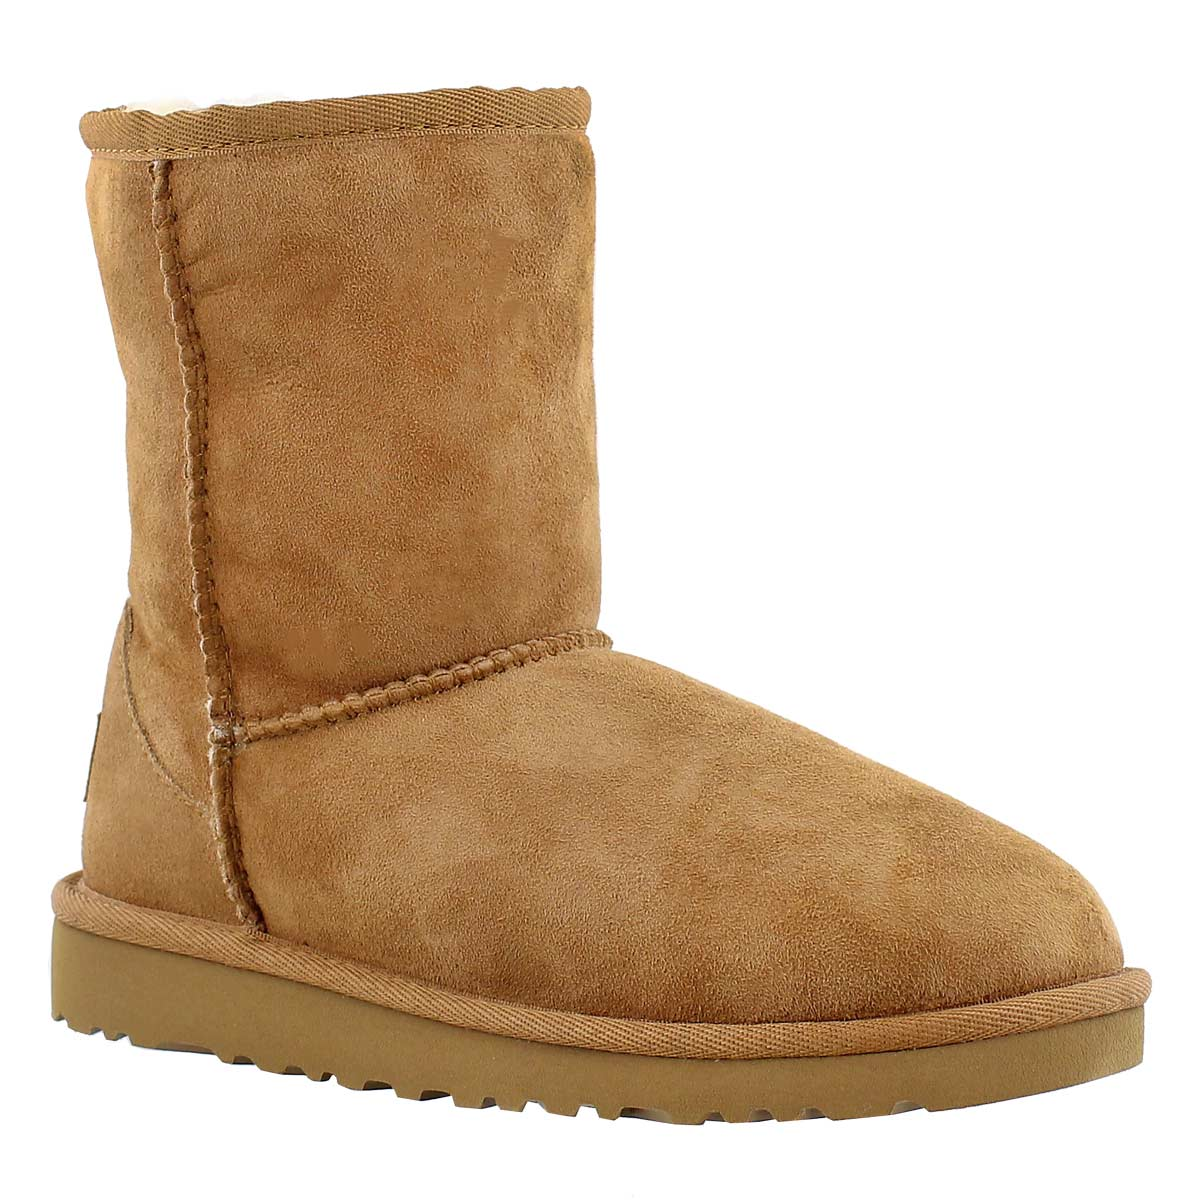 Uggs boots for girls ugg australia girls classic